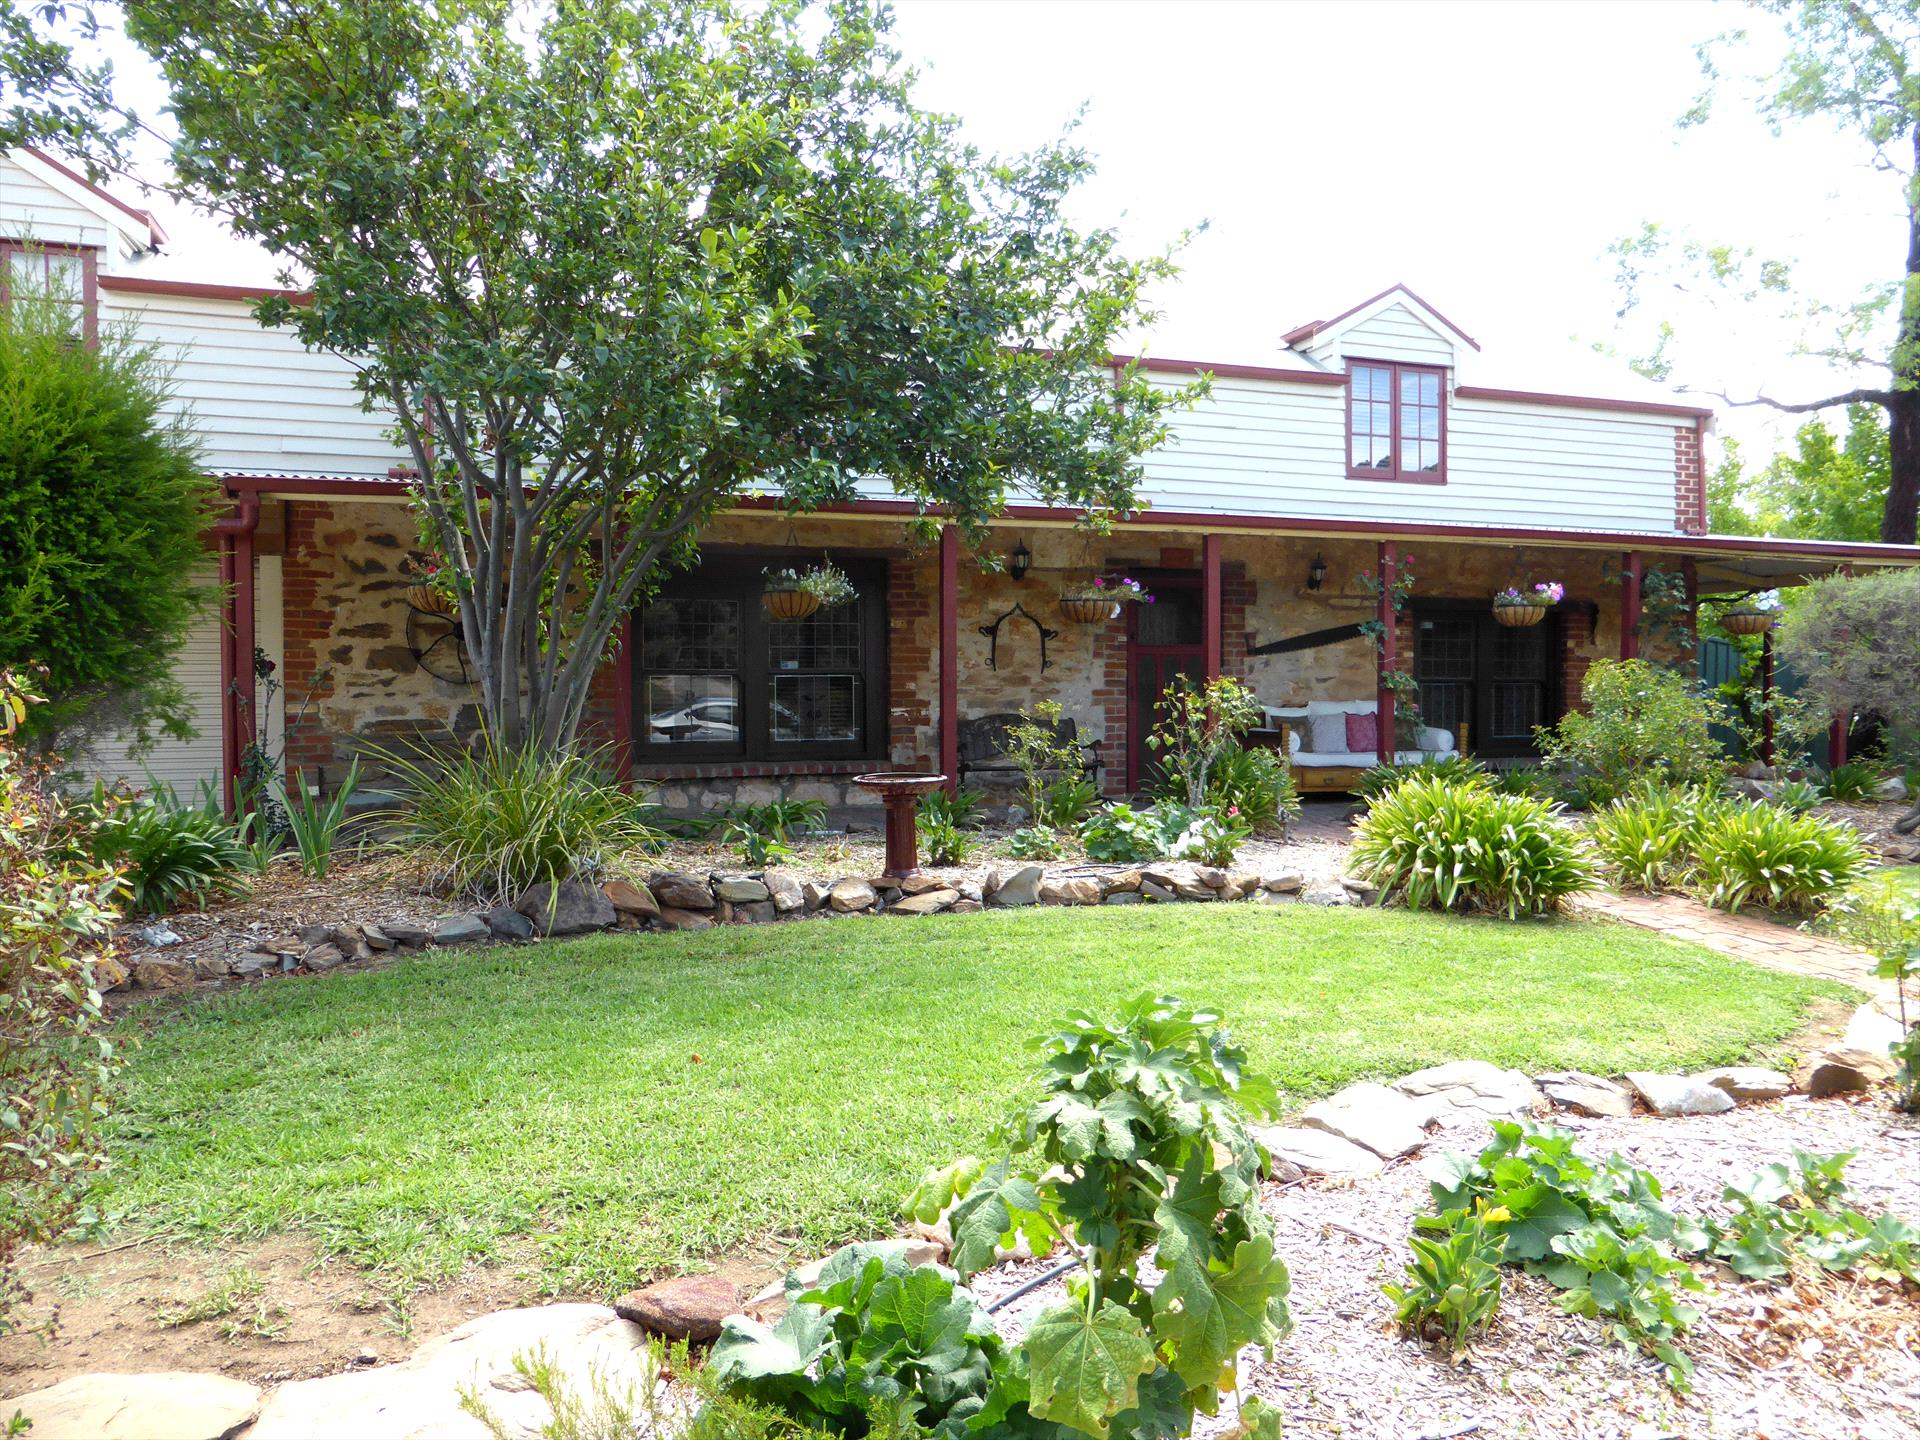 Barossa Barn Bed and Breakfast